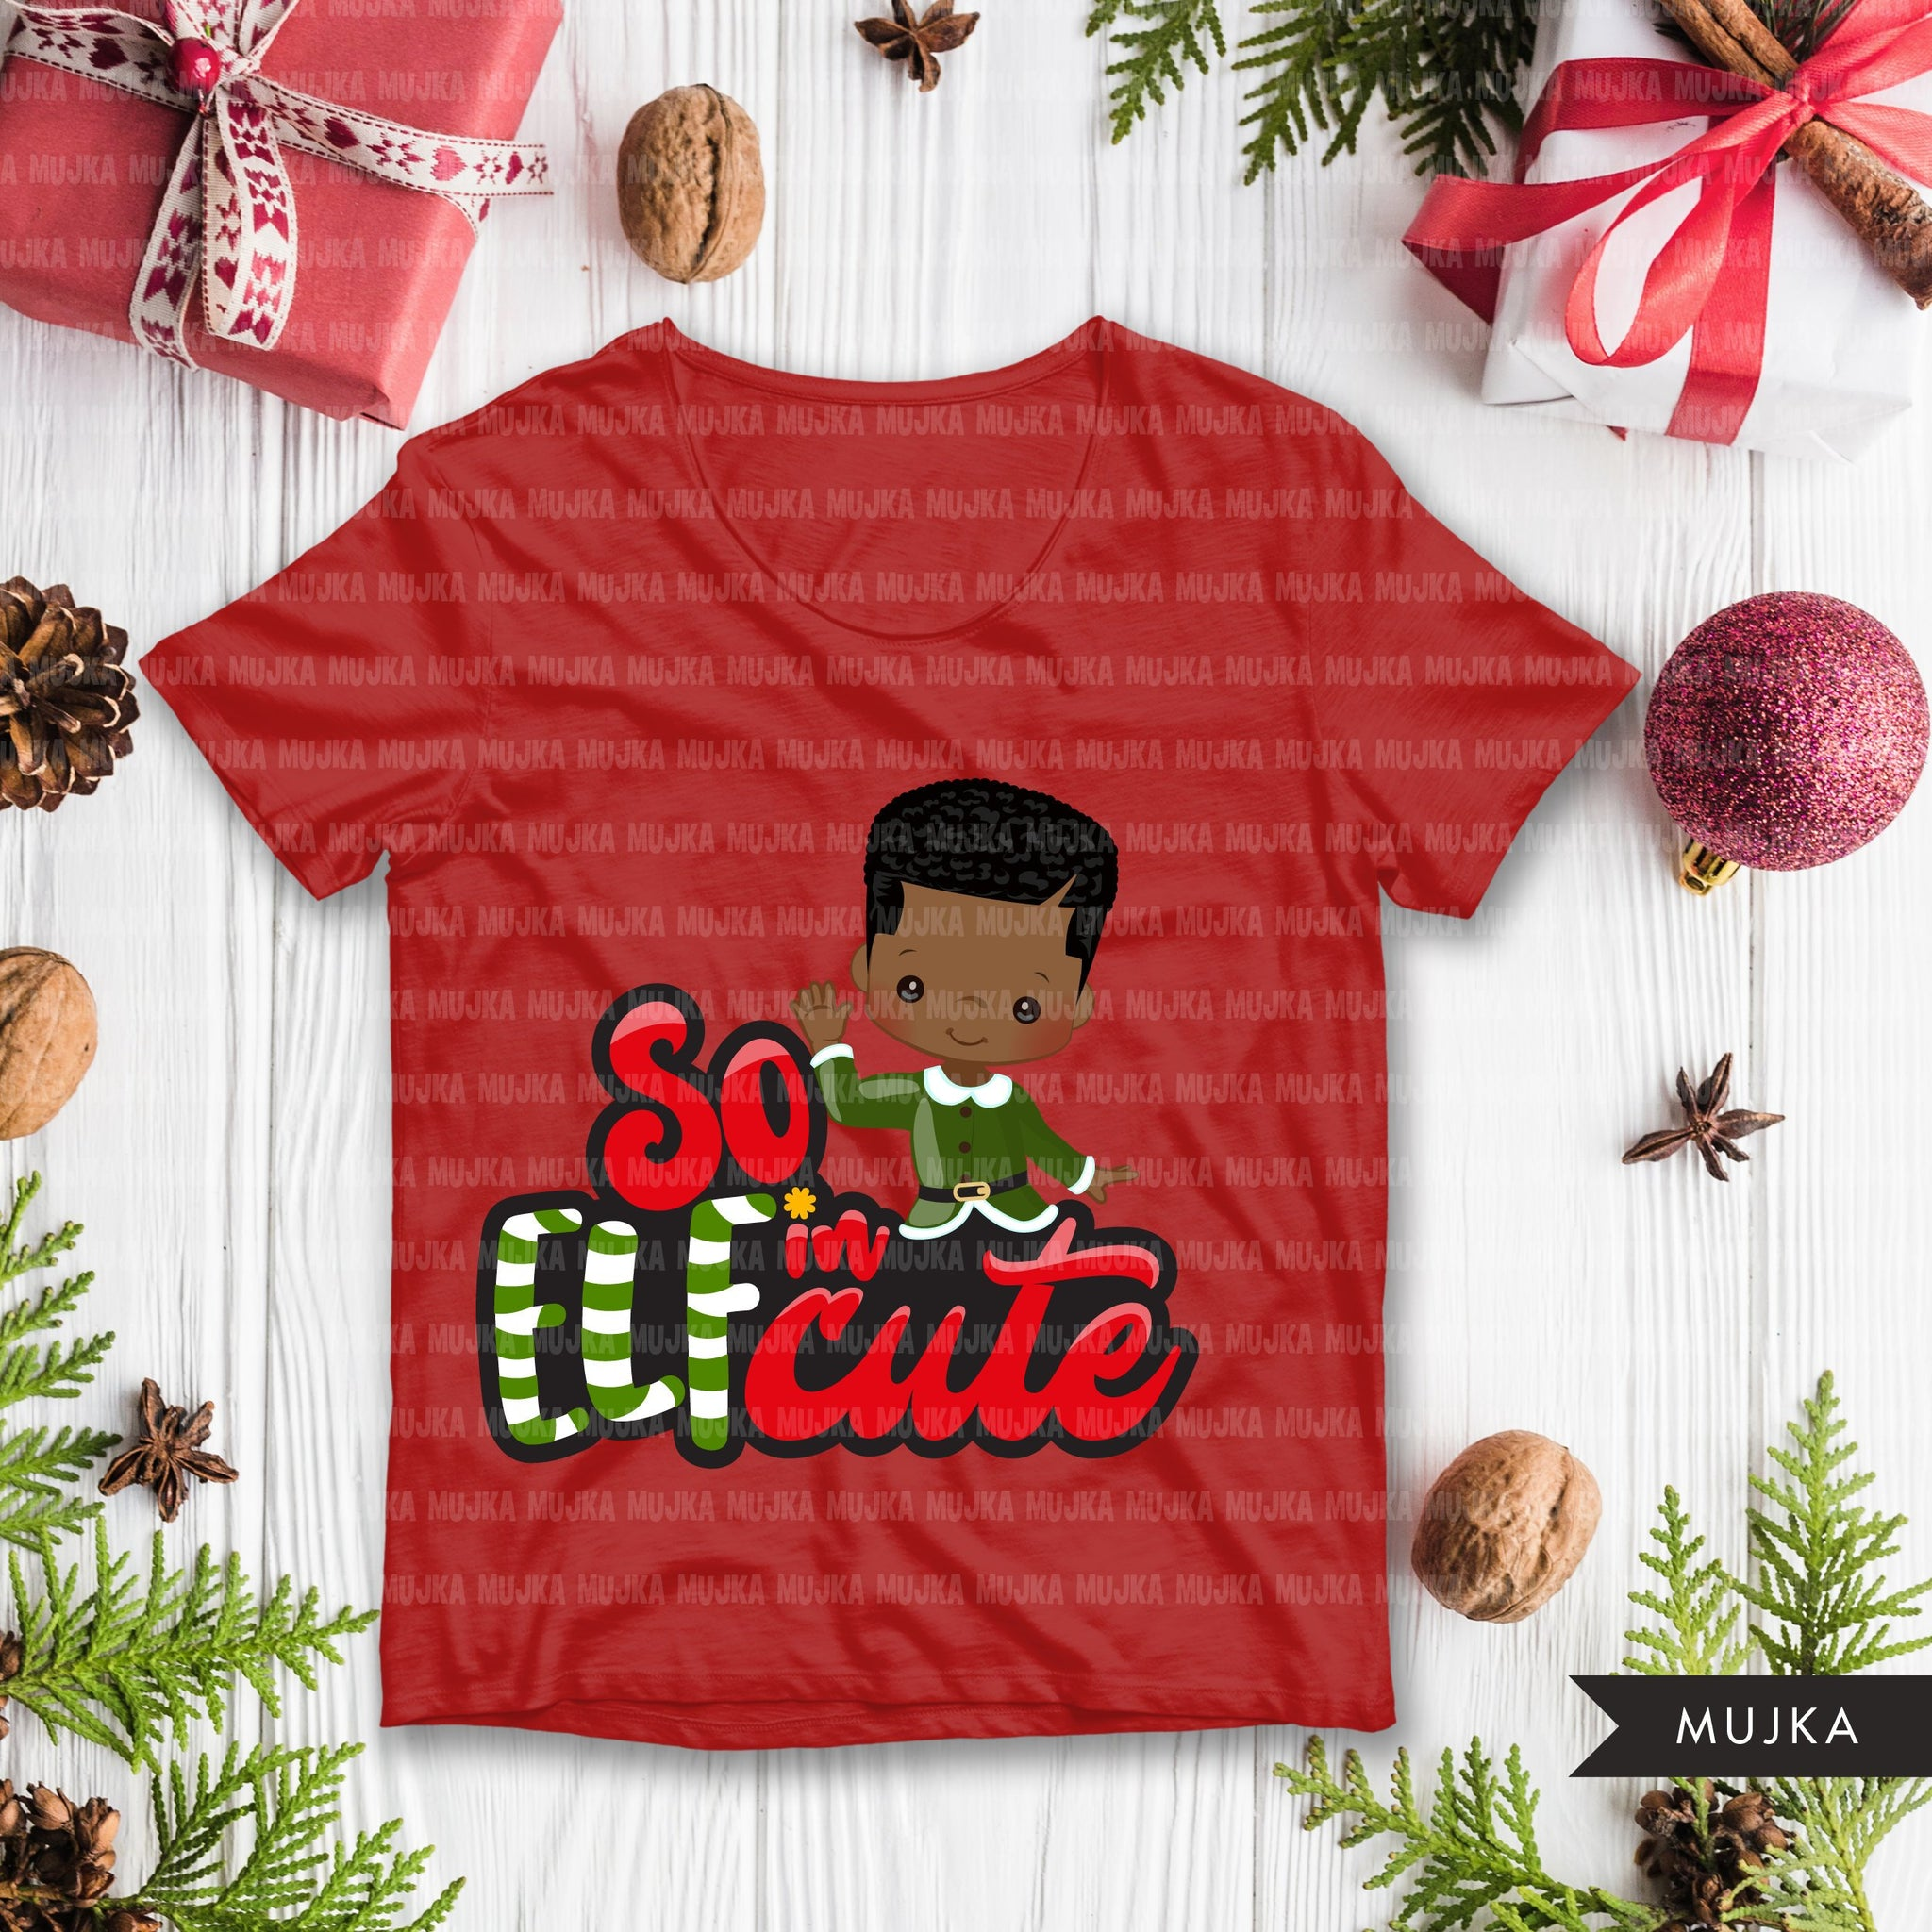 Christmas PNG digital, So Elfin Cute Printable HTV sublimation image transfer clipart, t-shirt Afro black boy graphics